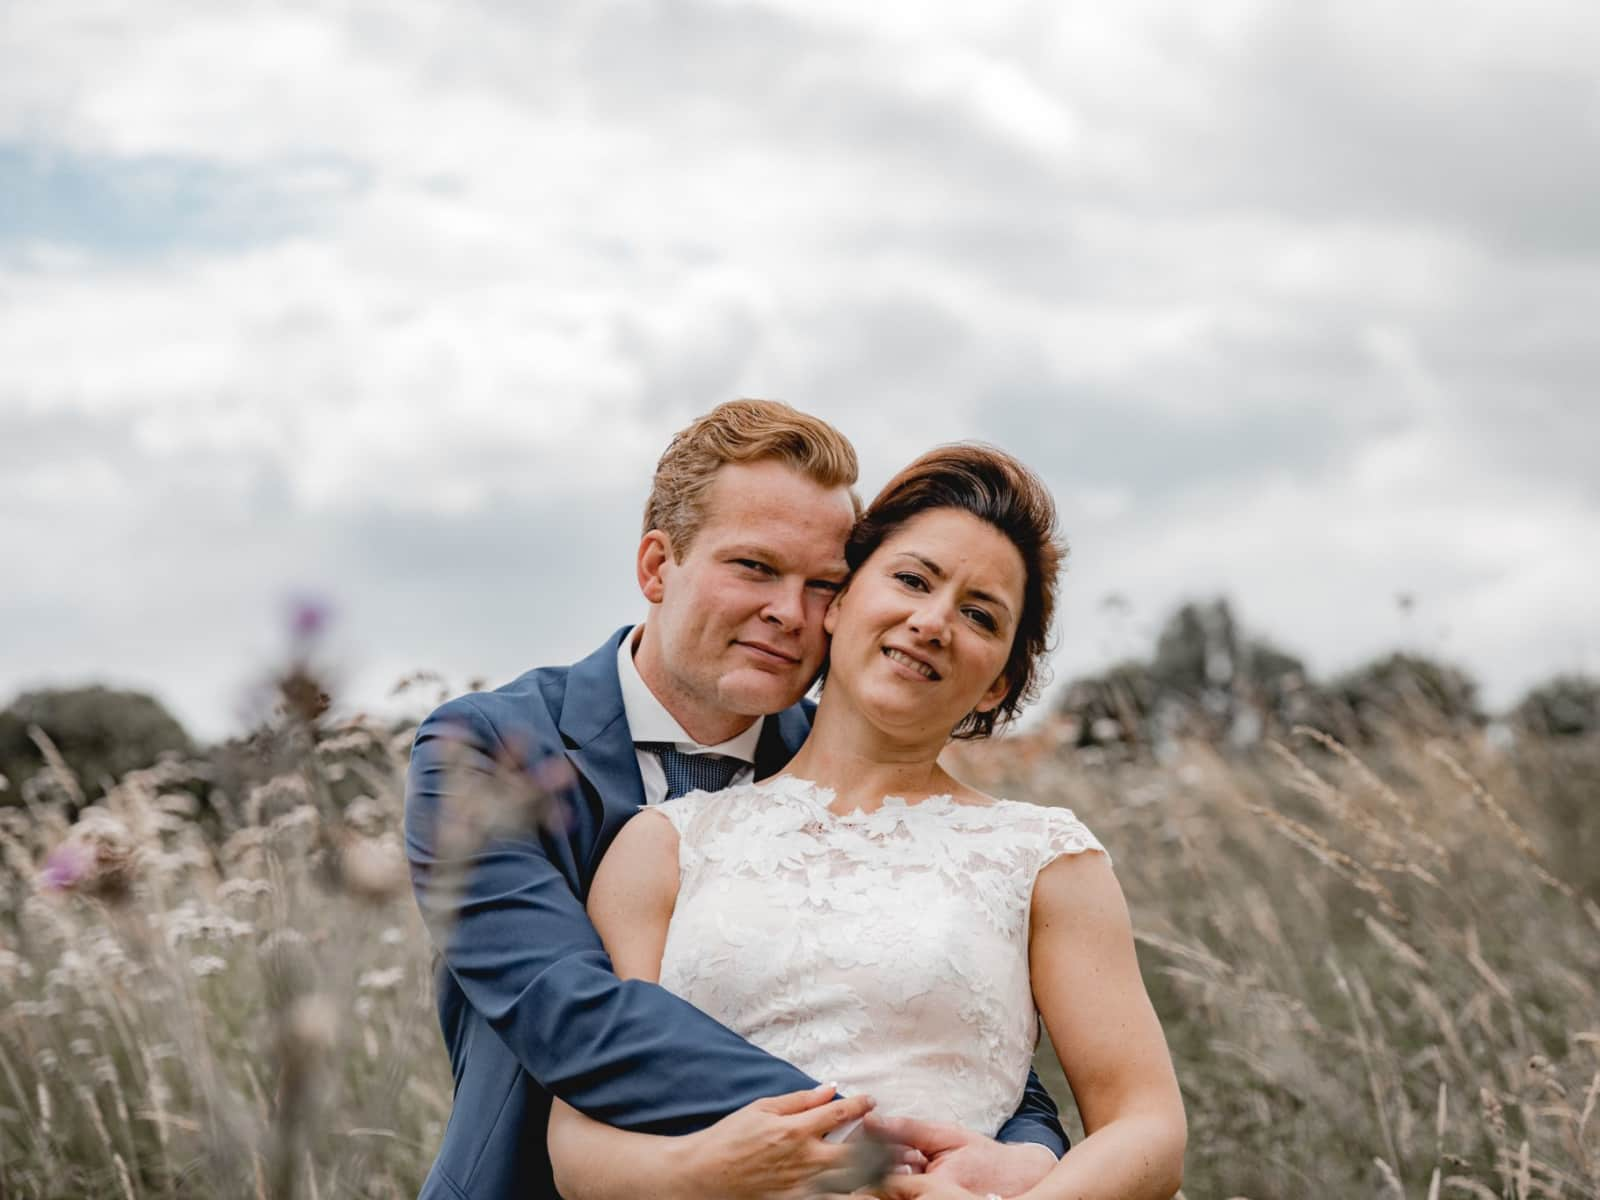 Rebecca & Daniel from Melle, Germany